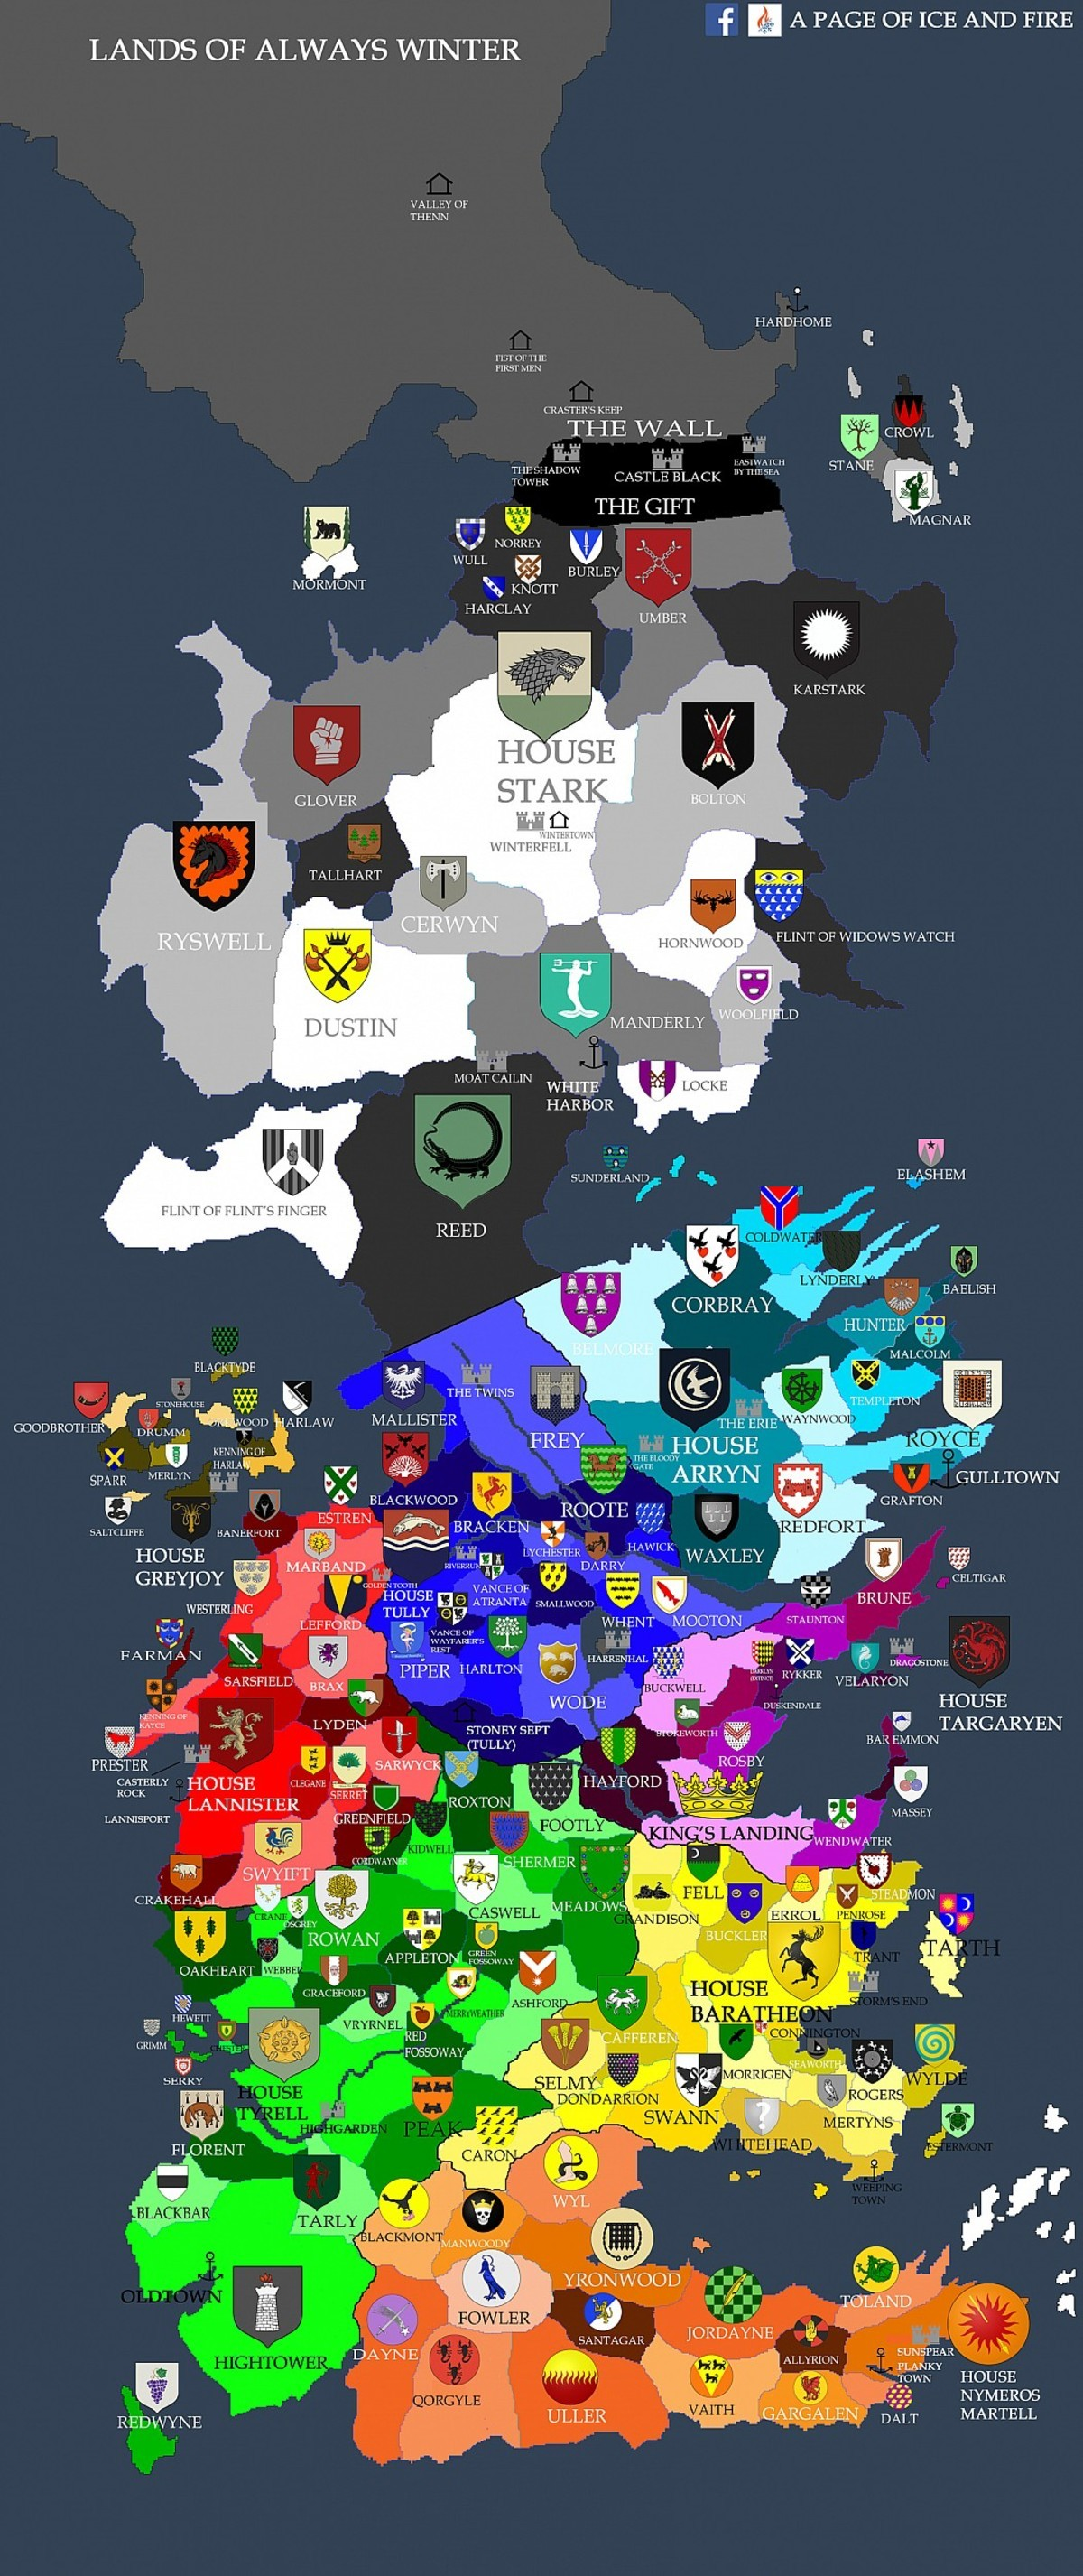 great map. join list: neato (1244 subs)Mention History join list:. The bottom half looks closely to Britain map not sure if it is